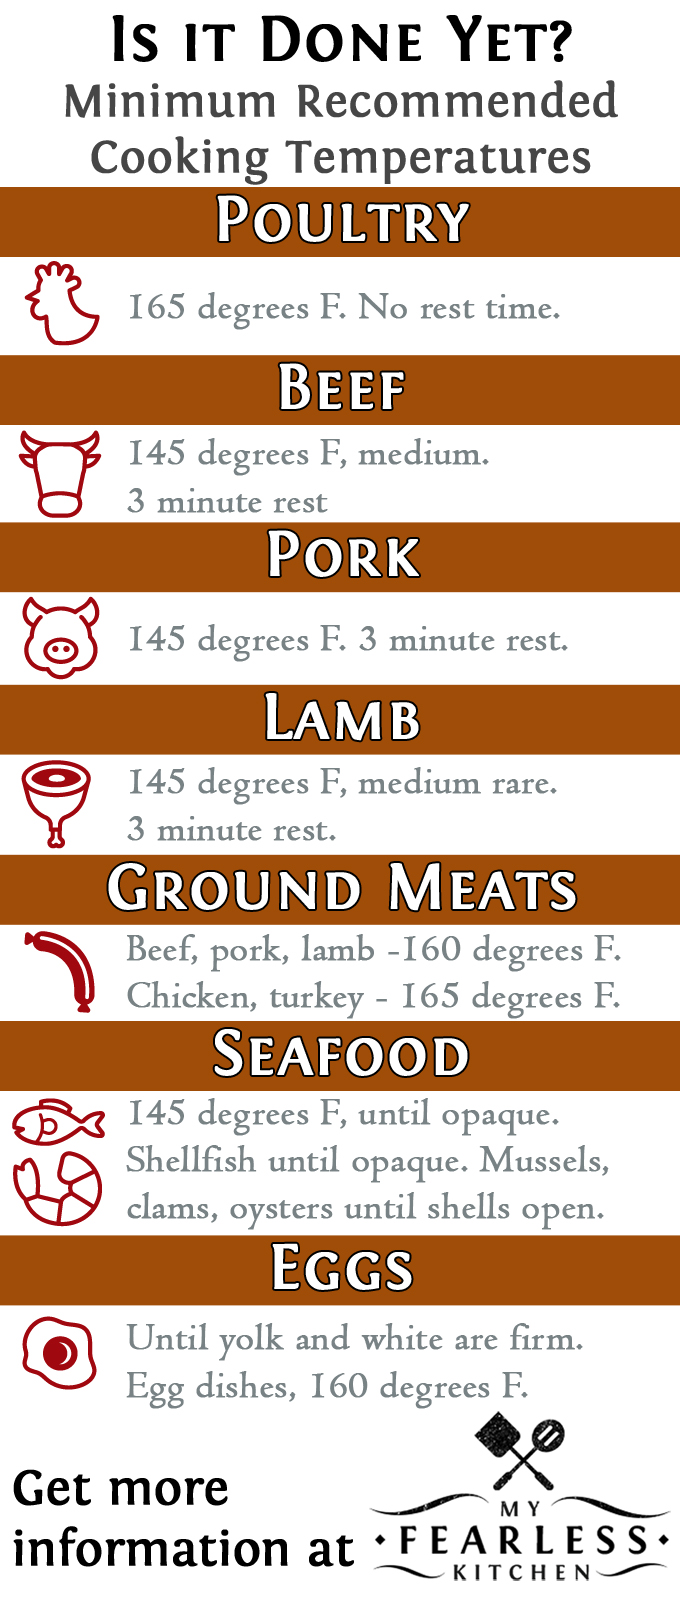 Is It Done Yet? from My Fearless Kitchen. Do you know how to tell if your meat is done cooking? You can't always tell by looking, and different meats have different recommended internal temperatures.